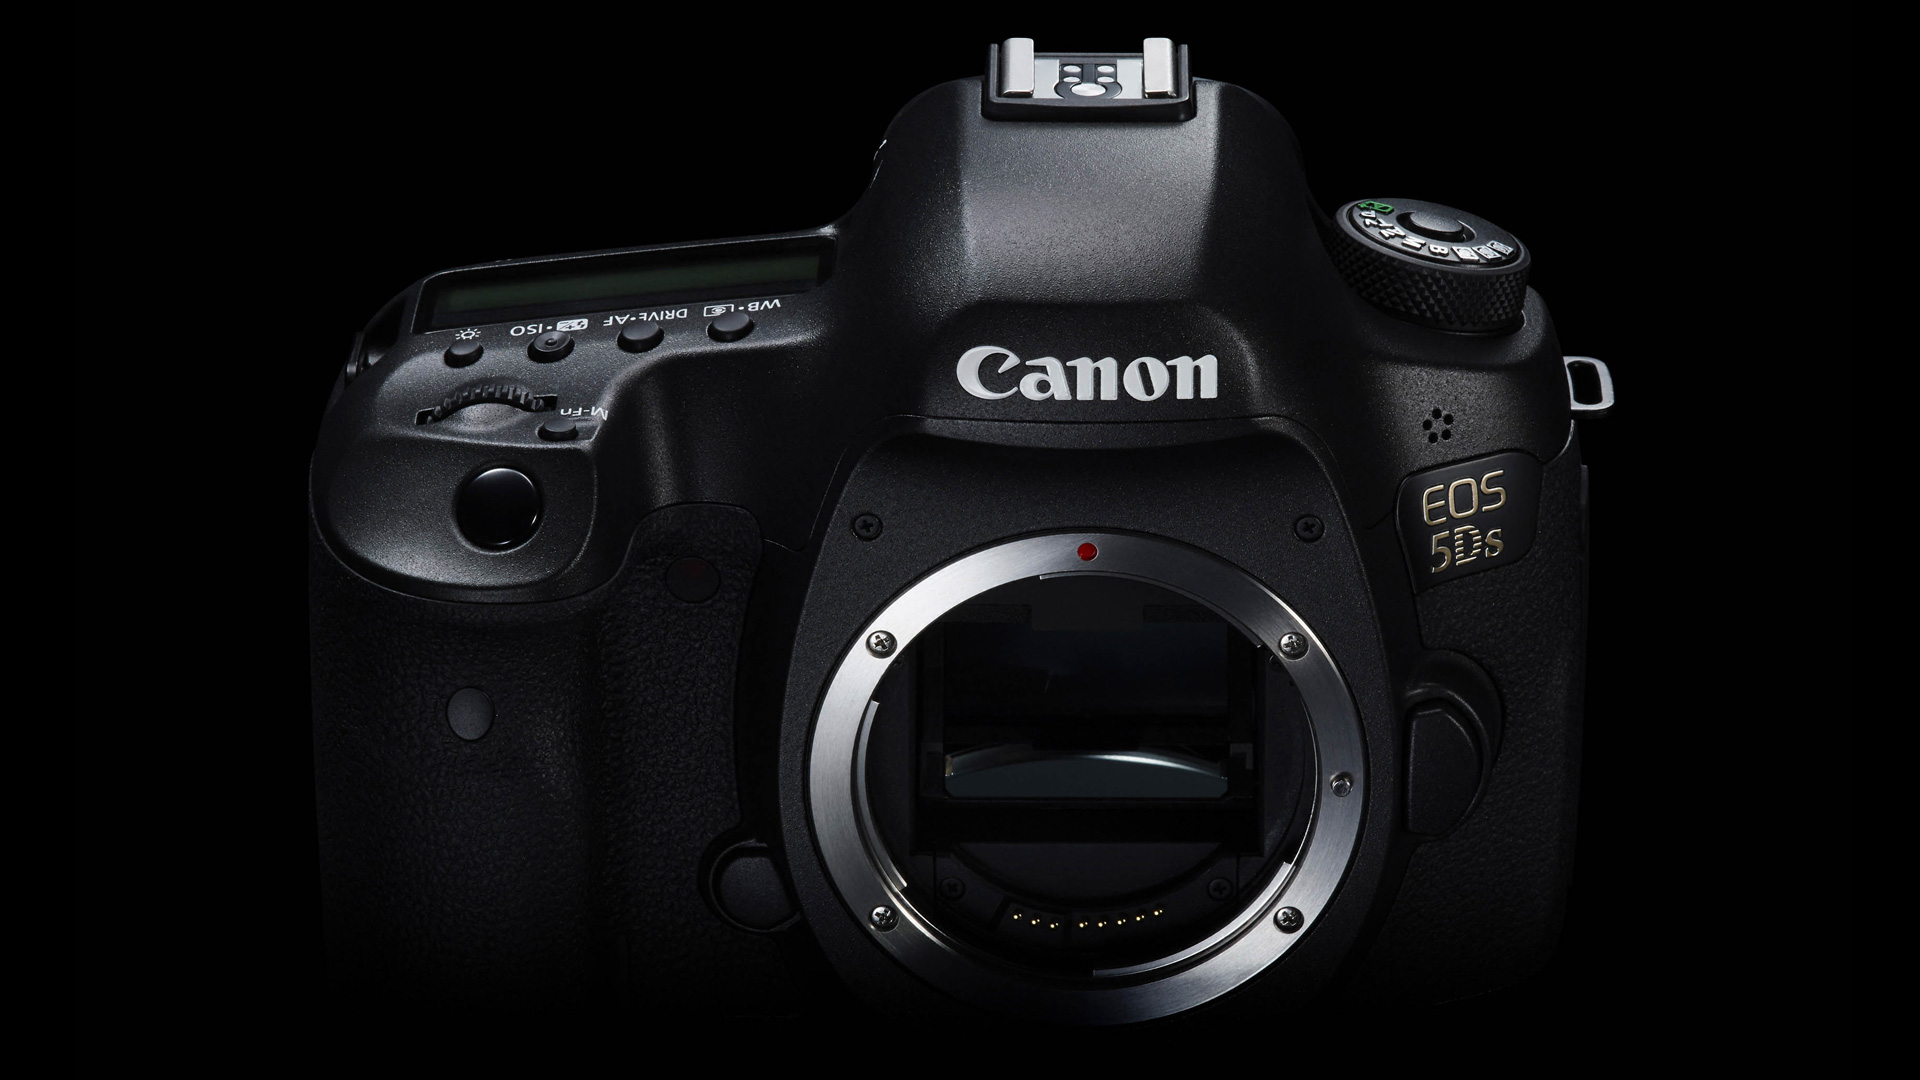 Five things you need to know about the Canon 5DS and 5DS R | TechRadar